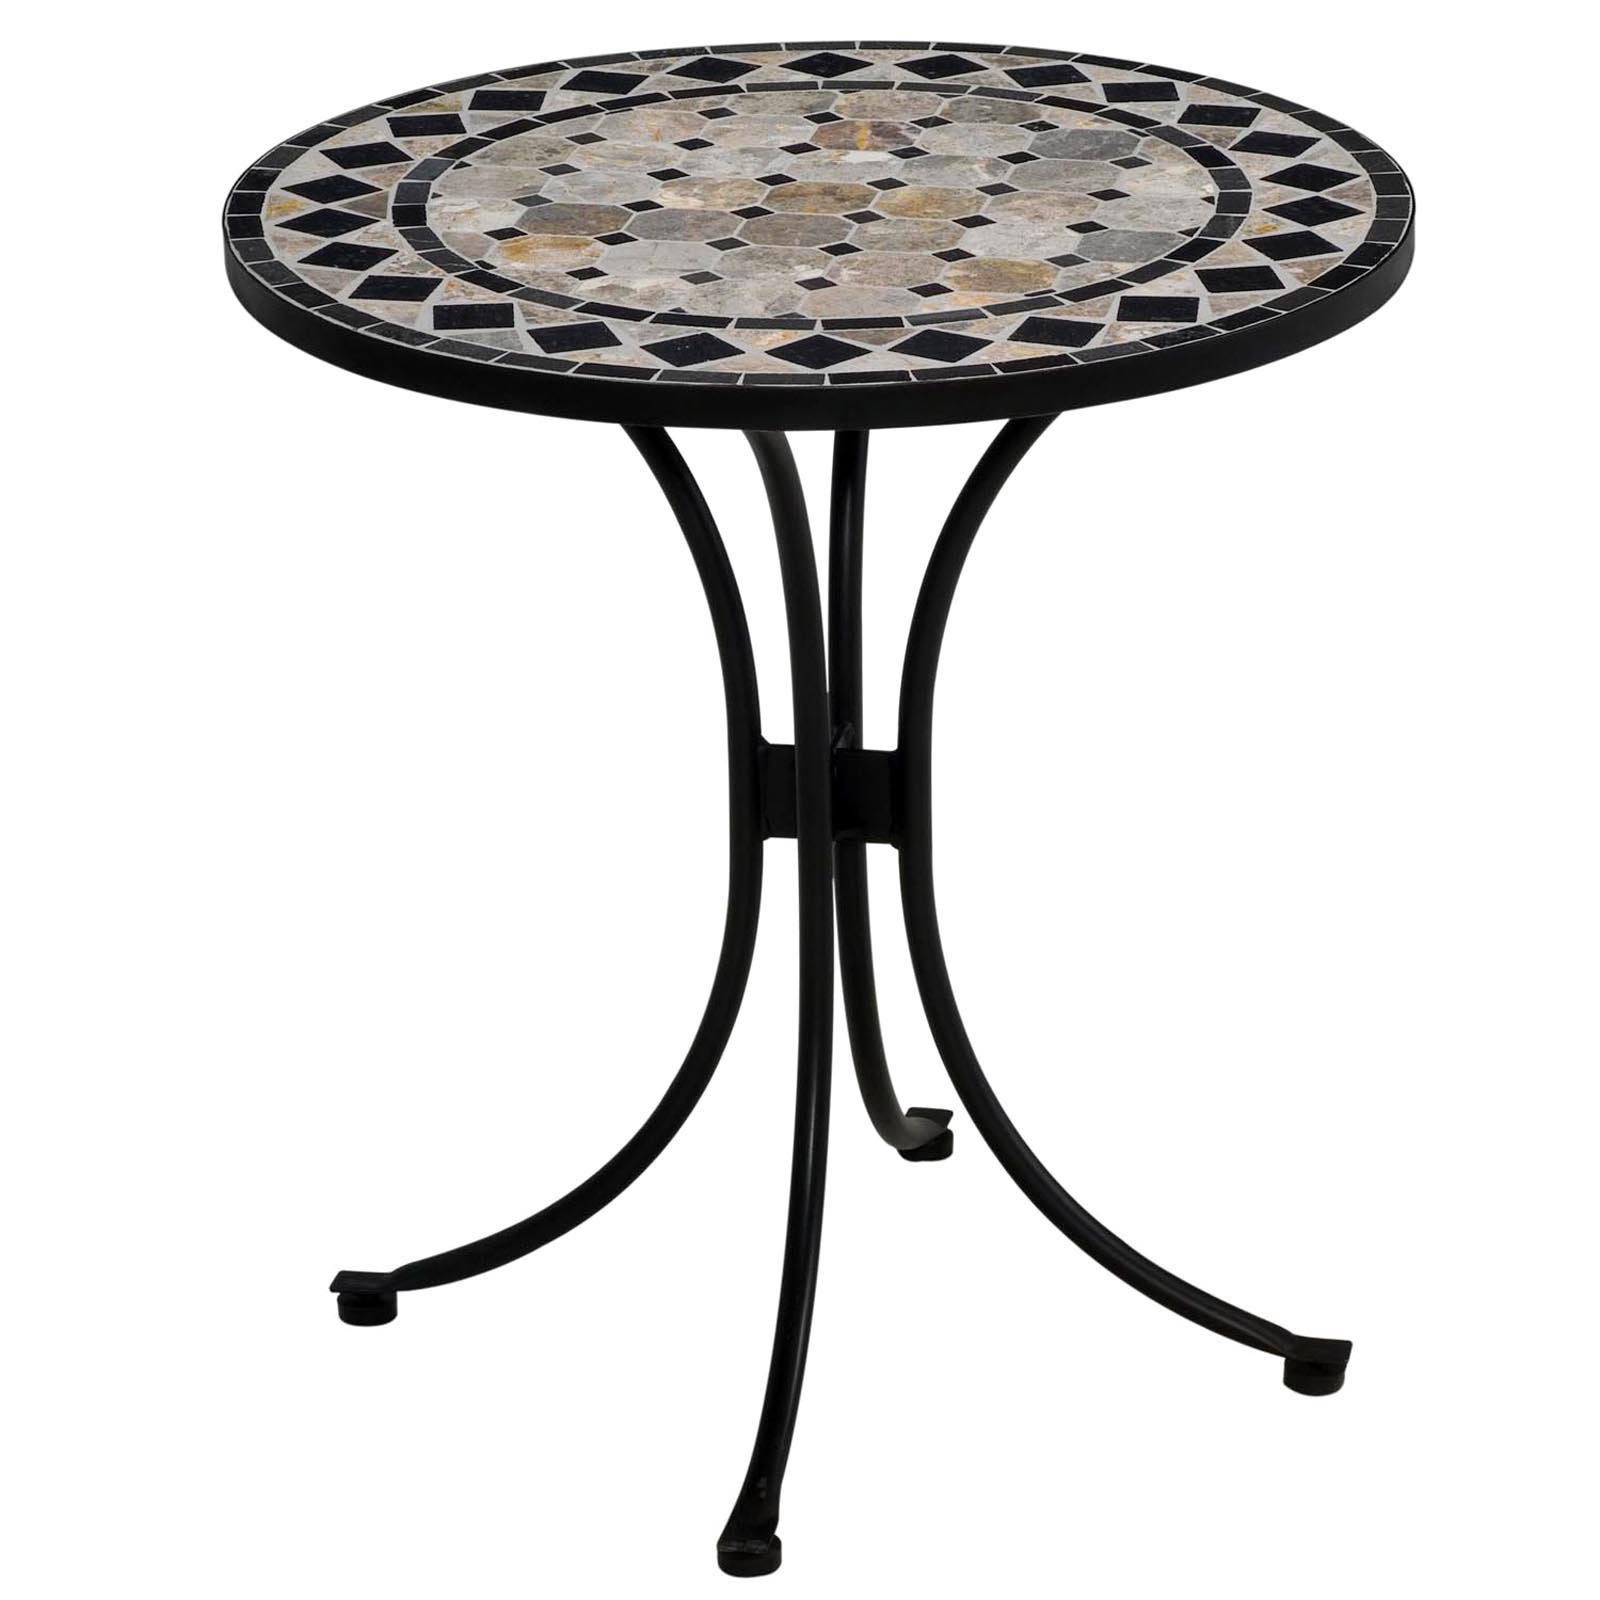 Home Styles Terra Cotta Tile Top Outdoor Bistro Table